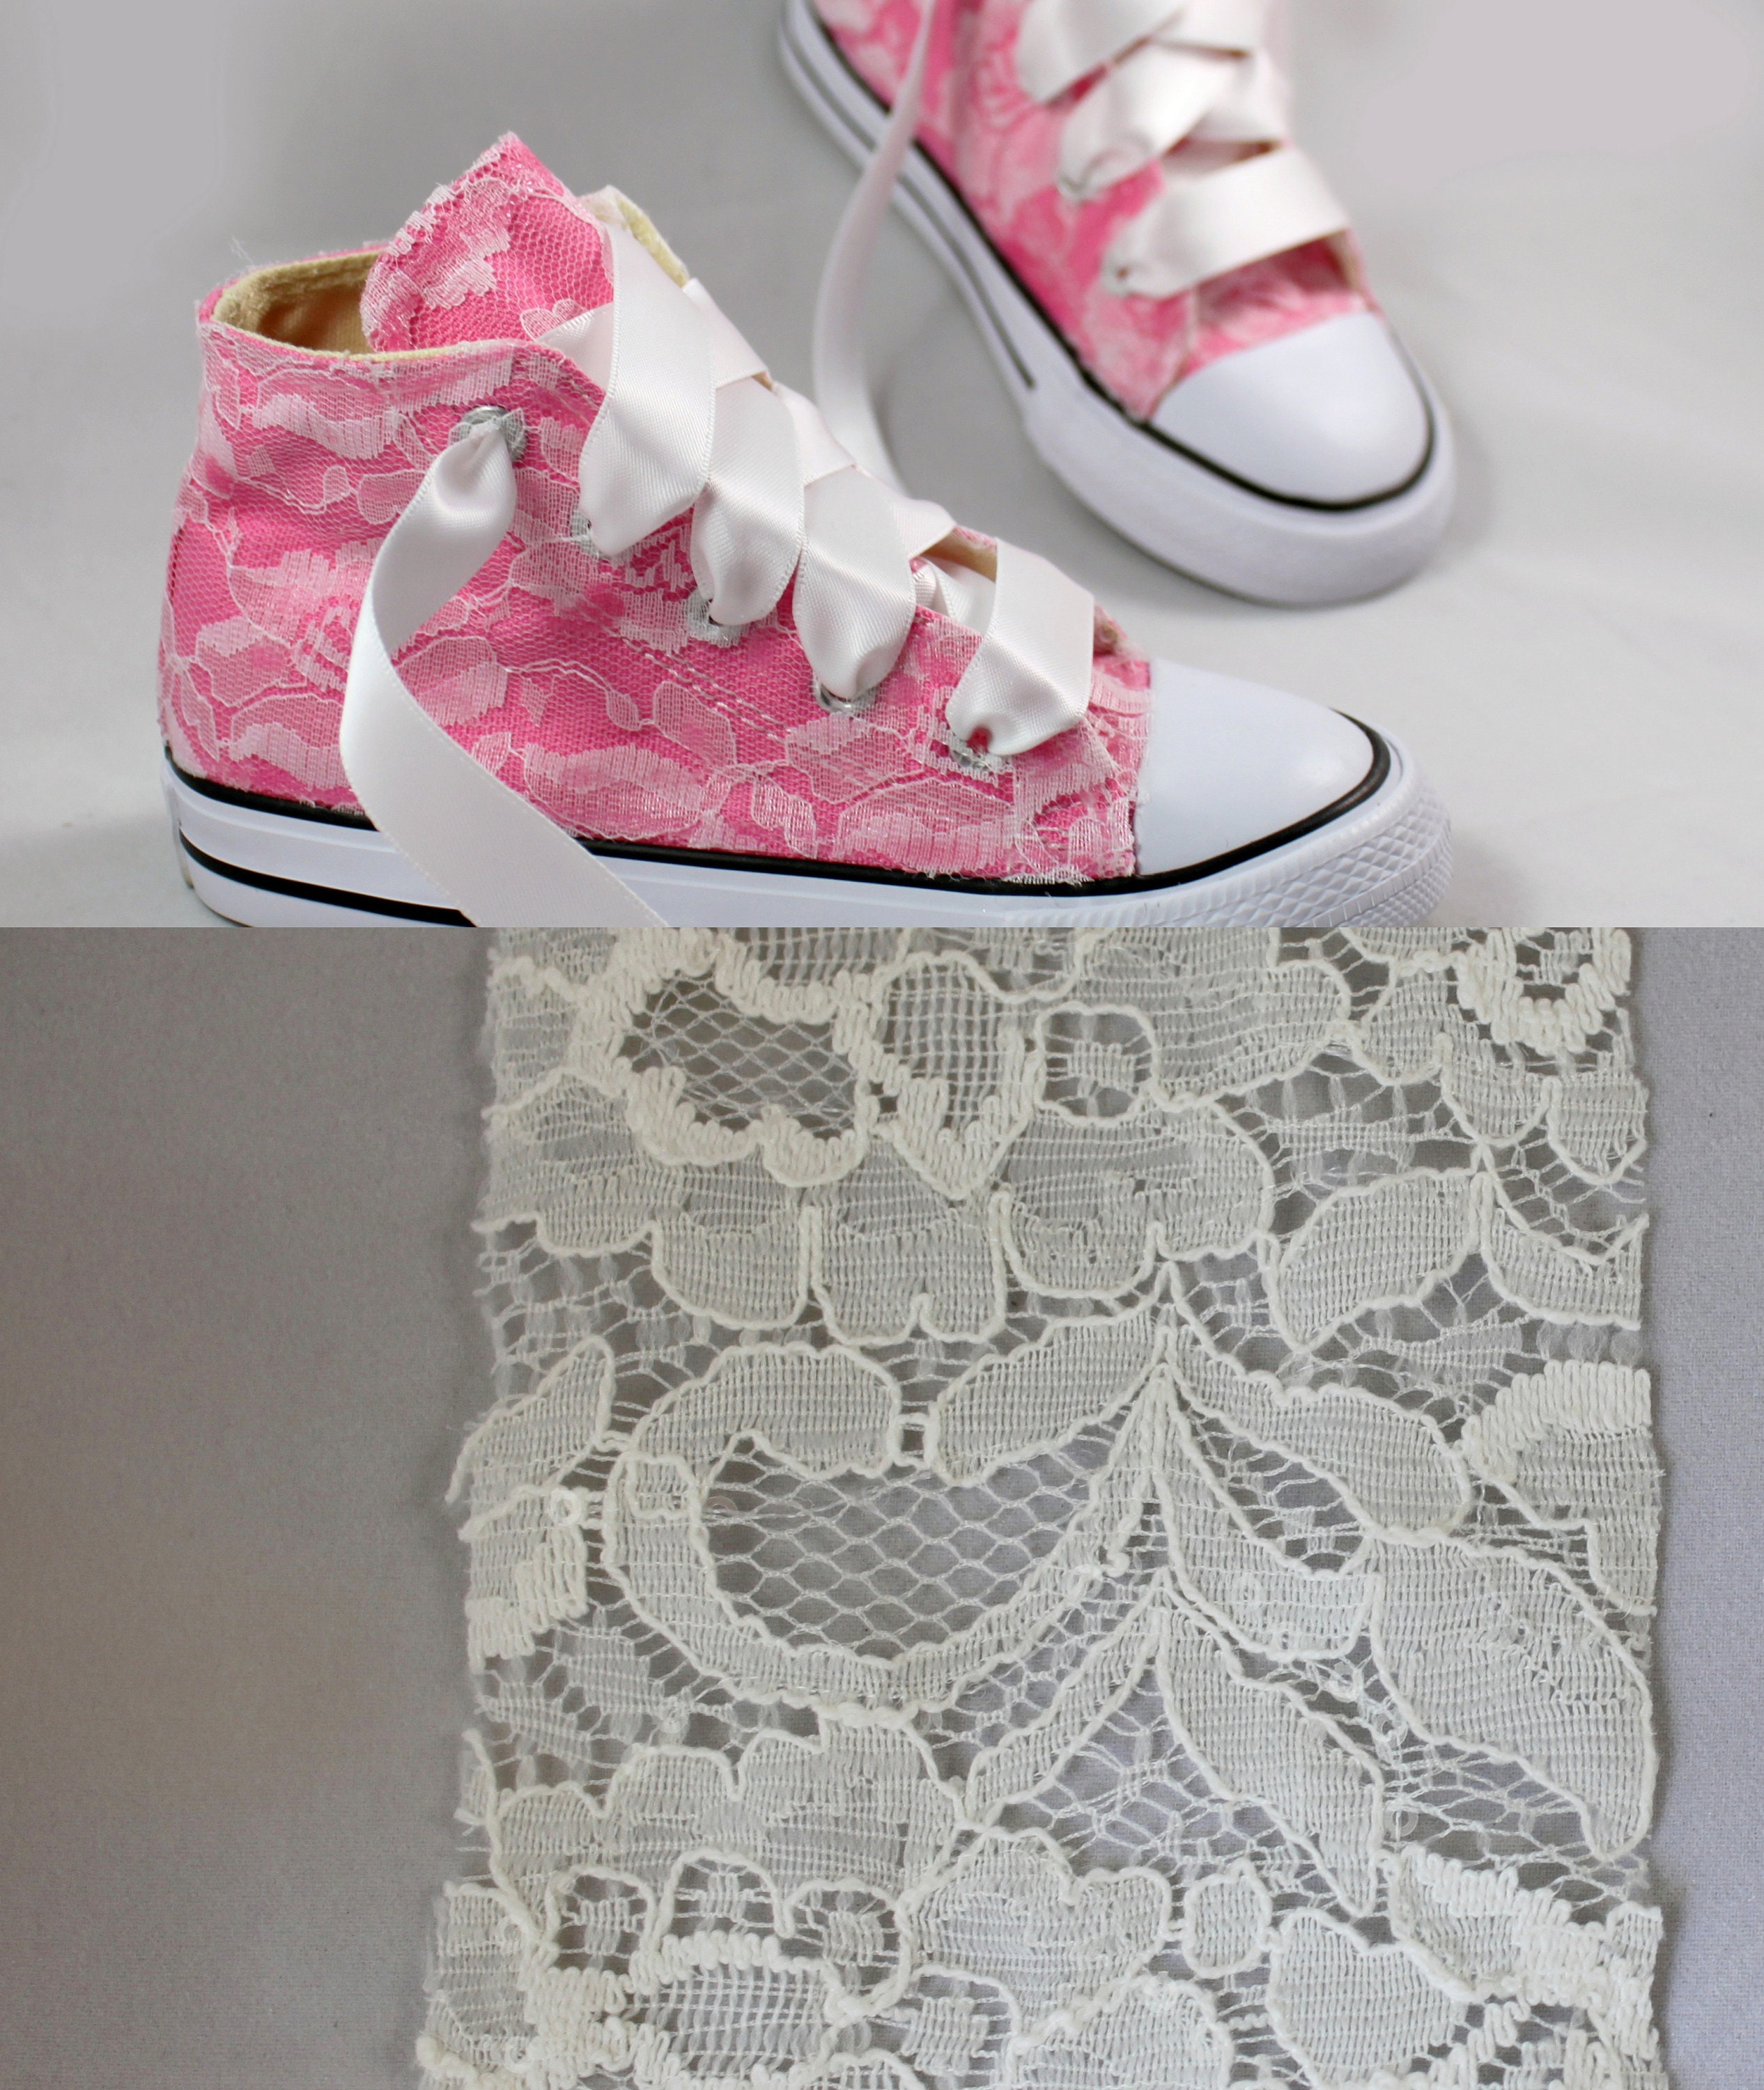 0a6bb79e9829 6 Custom Girls Converses For Michalyne Taylor - Lace Converses ...